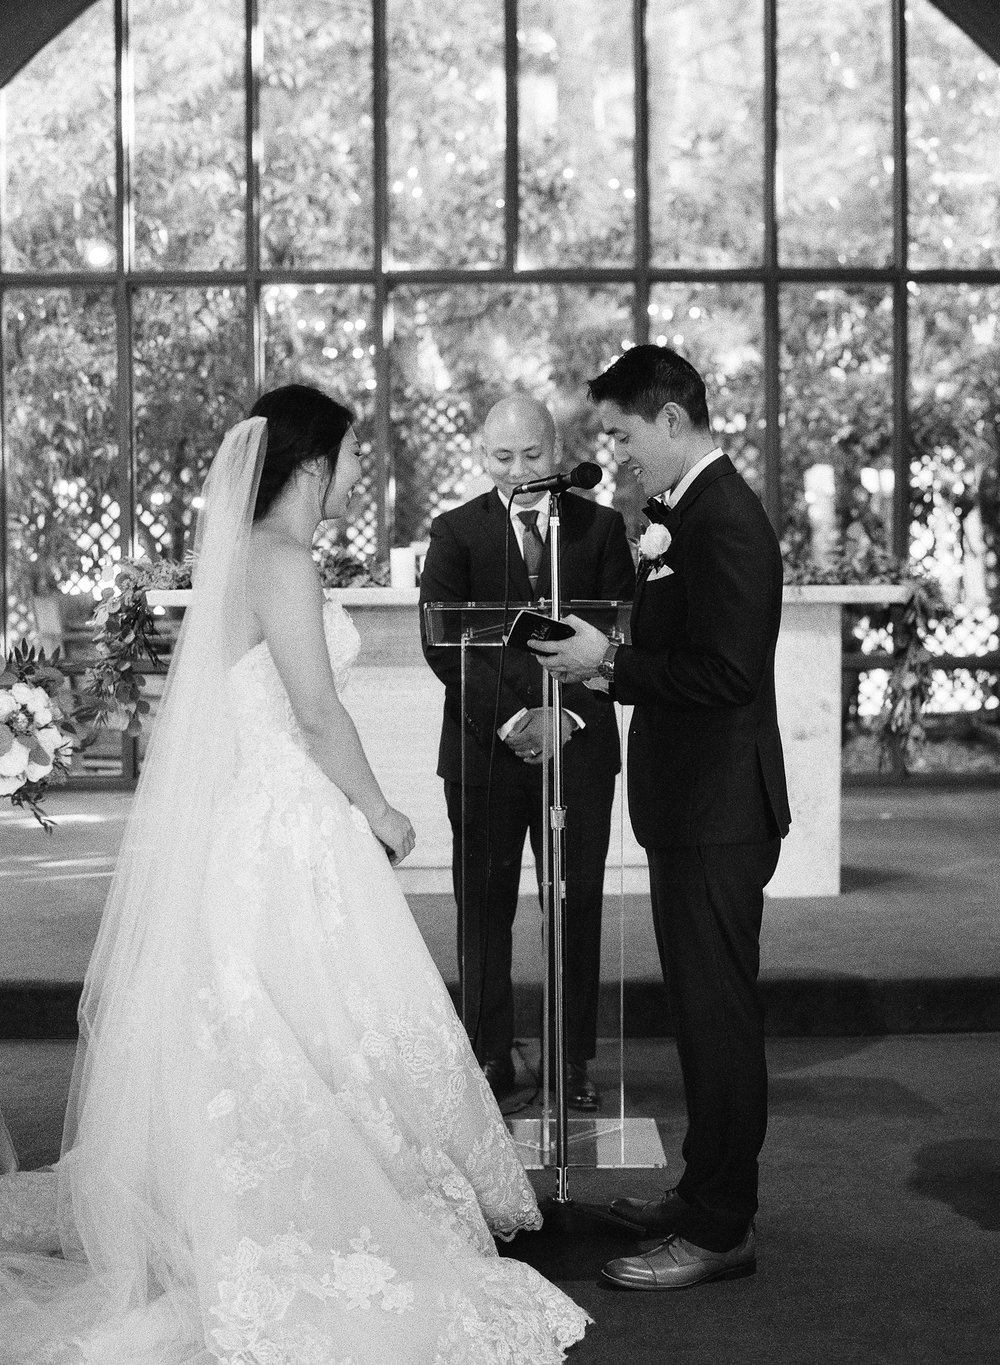 NathalieCheng_SNWedding_Ceremony_013.jpg